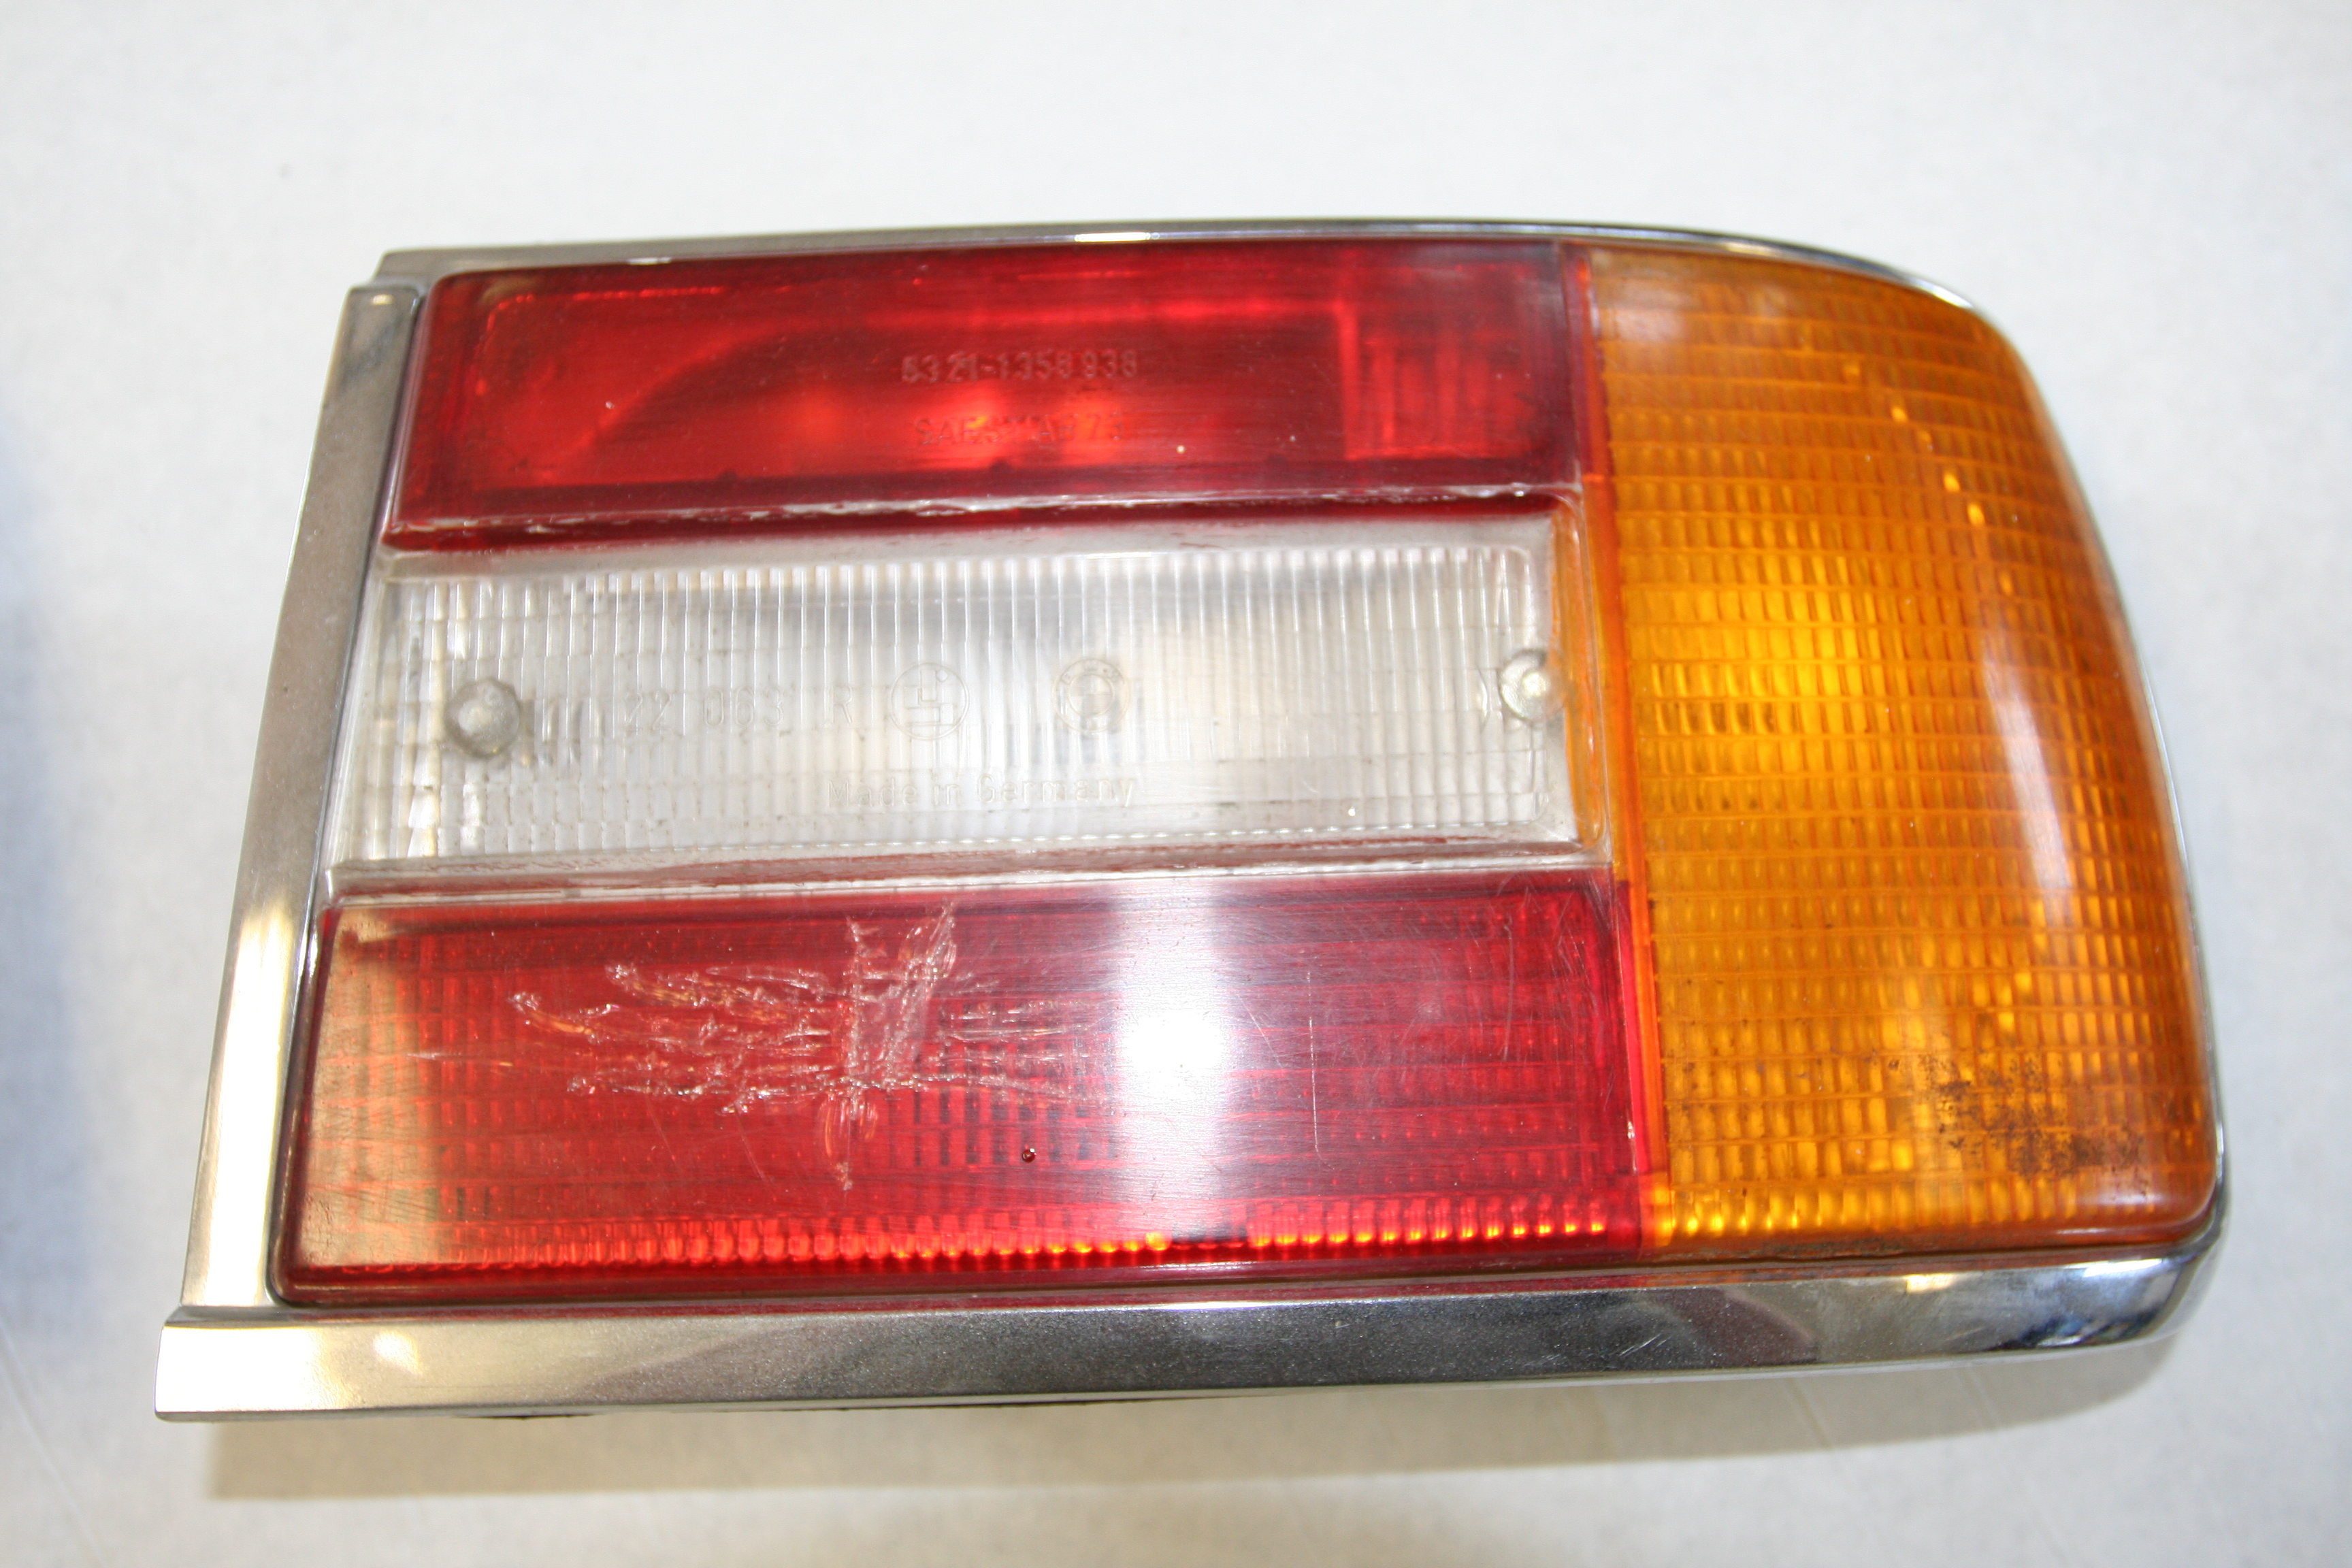 2002 1974-1976 Rear Tail Lights - Parts For Sale - BMW 2002 FAQ